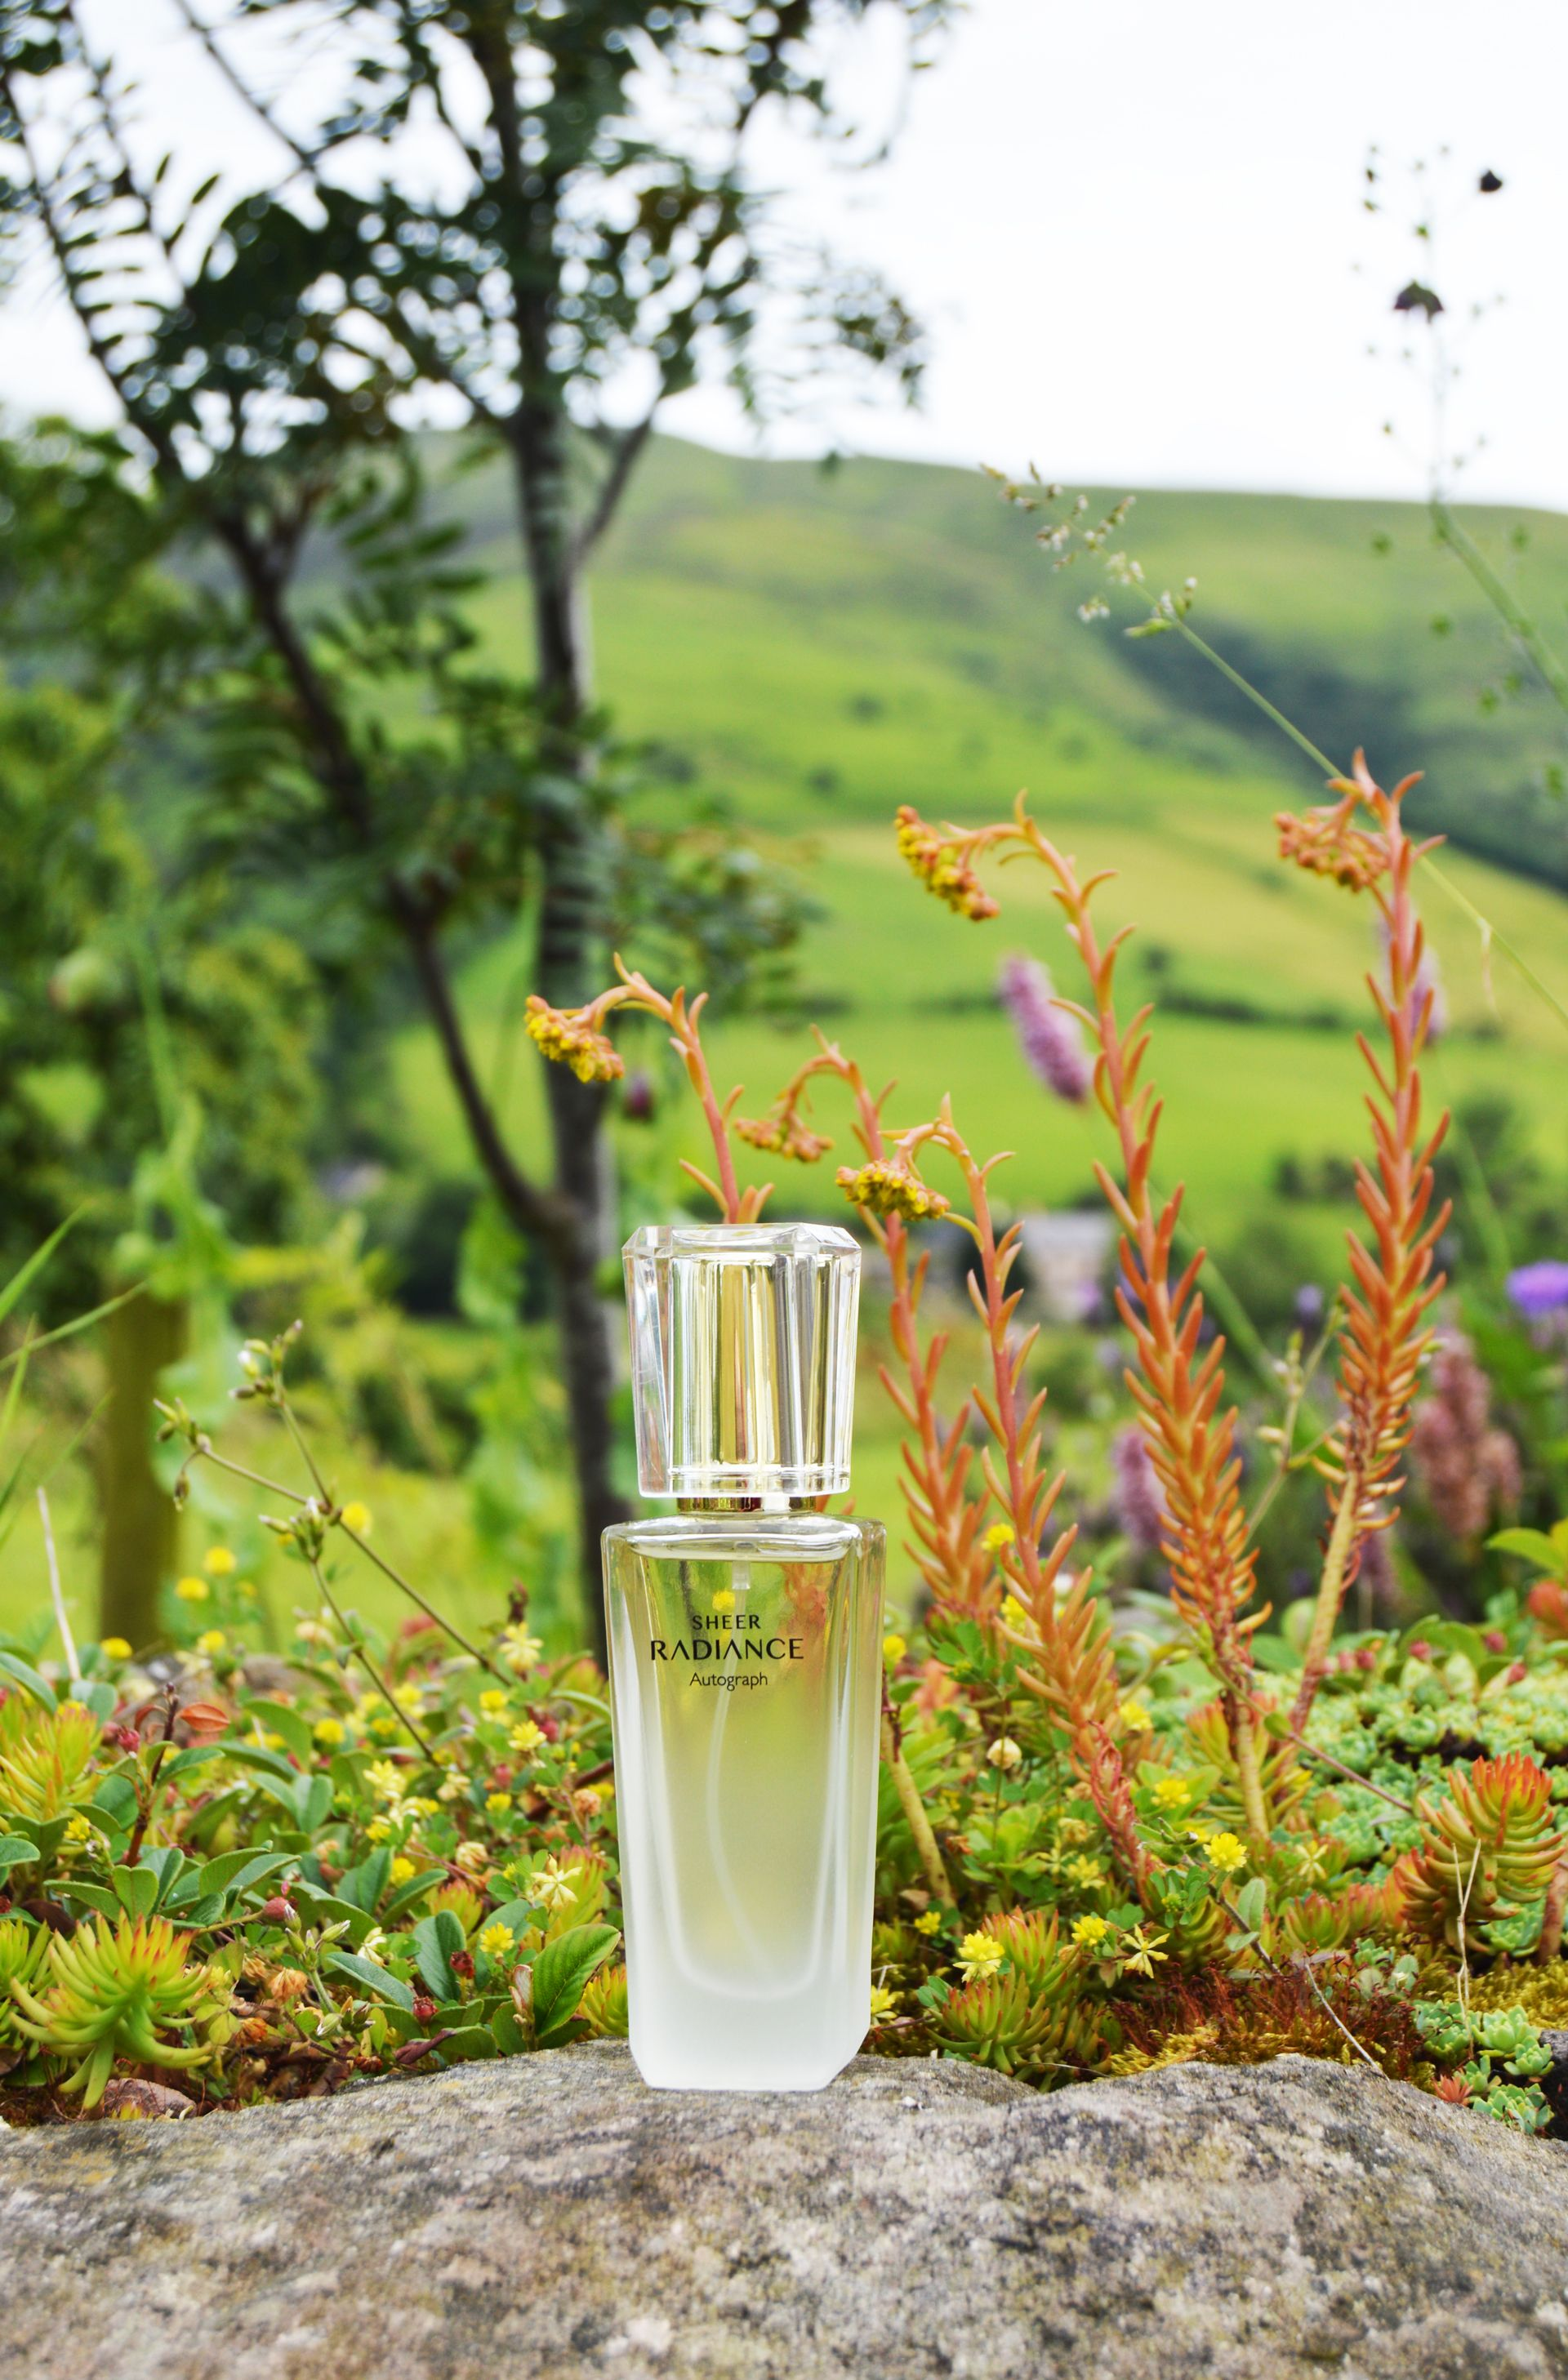 Autograph Sheer Radiance is a delicate, fruity fragrance with a hint of floral. It is lightweight and it is perfect for Summer as it is not overpowering.